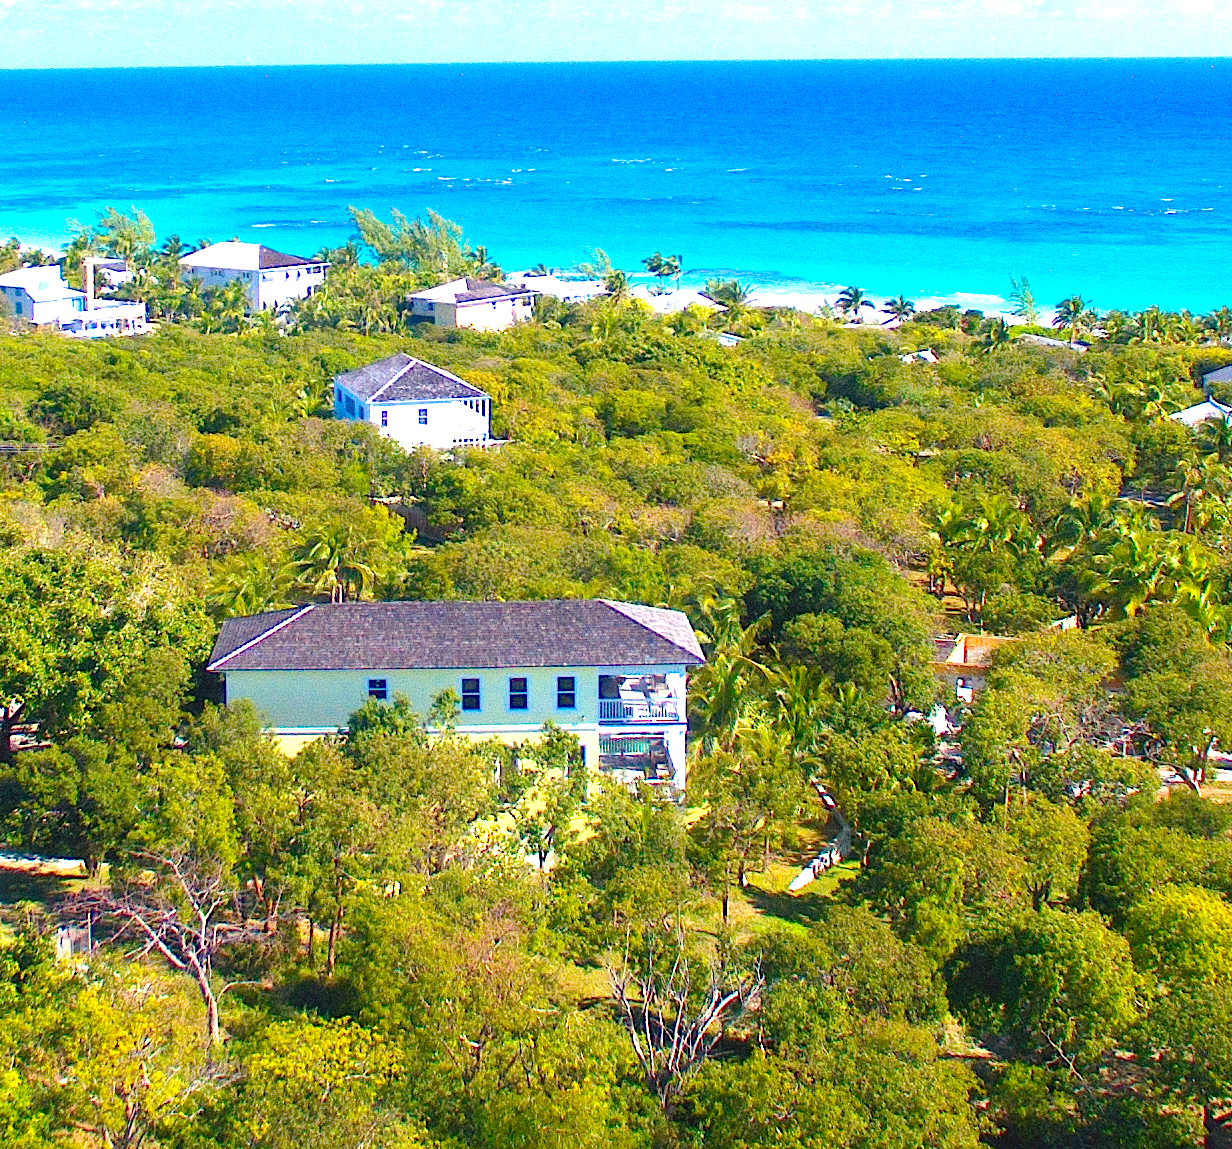 Tek Ailelik Ev için Satış at Banyan Tree Estate at Pink Sands Harbour Island, Eleuthera, Bahamalar